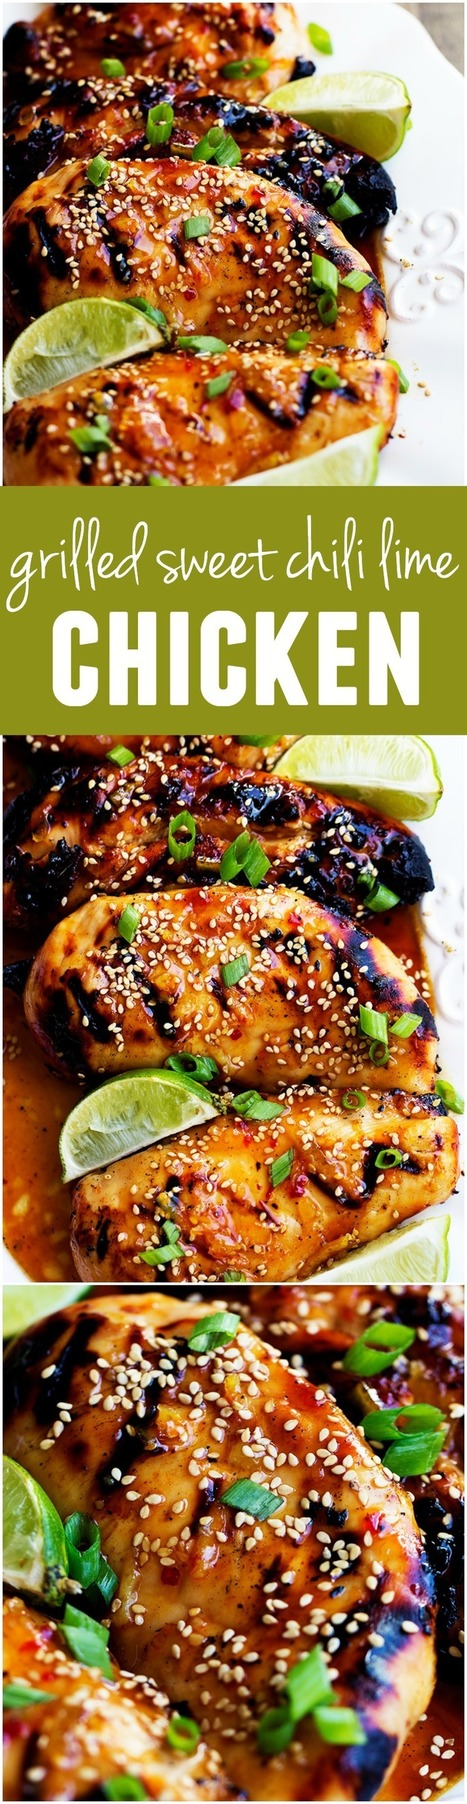 This Sweet Chili Lime Chicken is grilled to tender and juicy perfection and the flavor is out of this world! - Food And Drink For You | ♨ Family & Food ♨ | Scoop.it